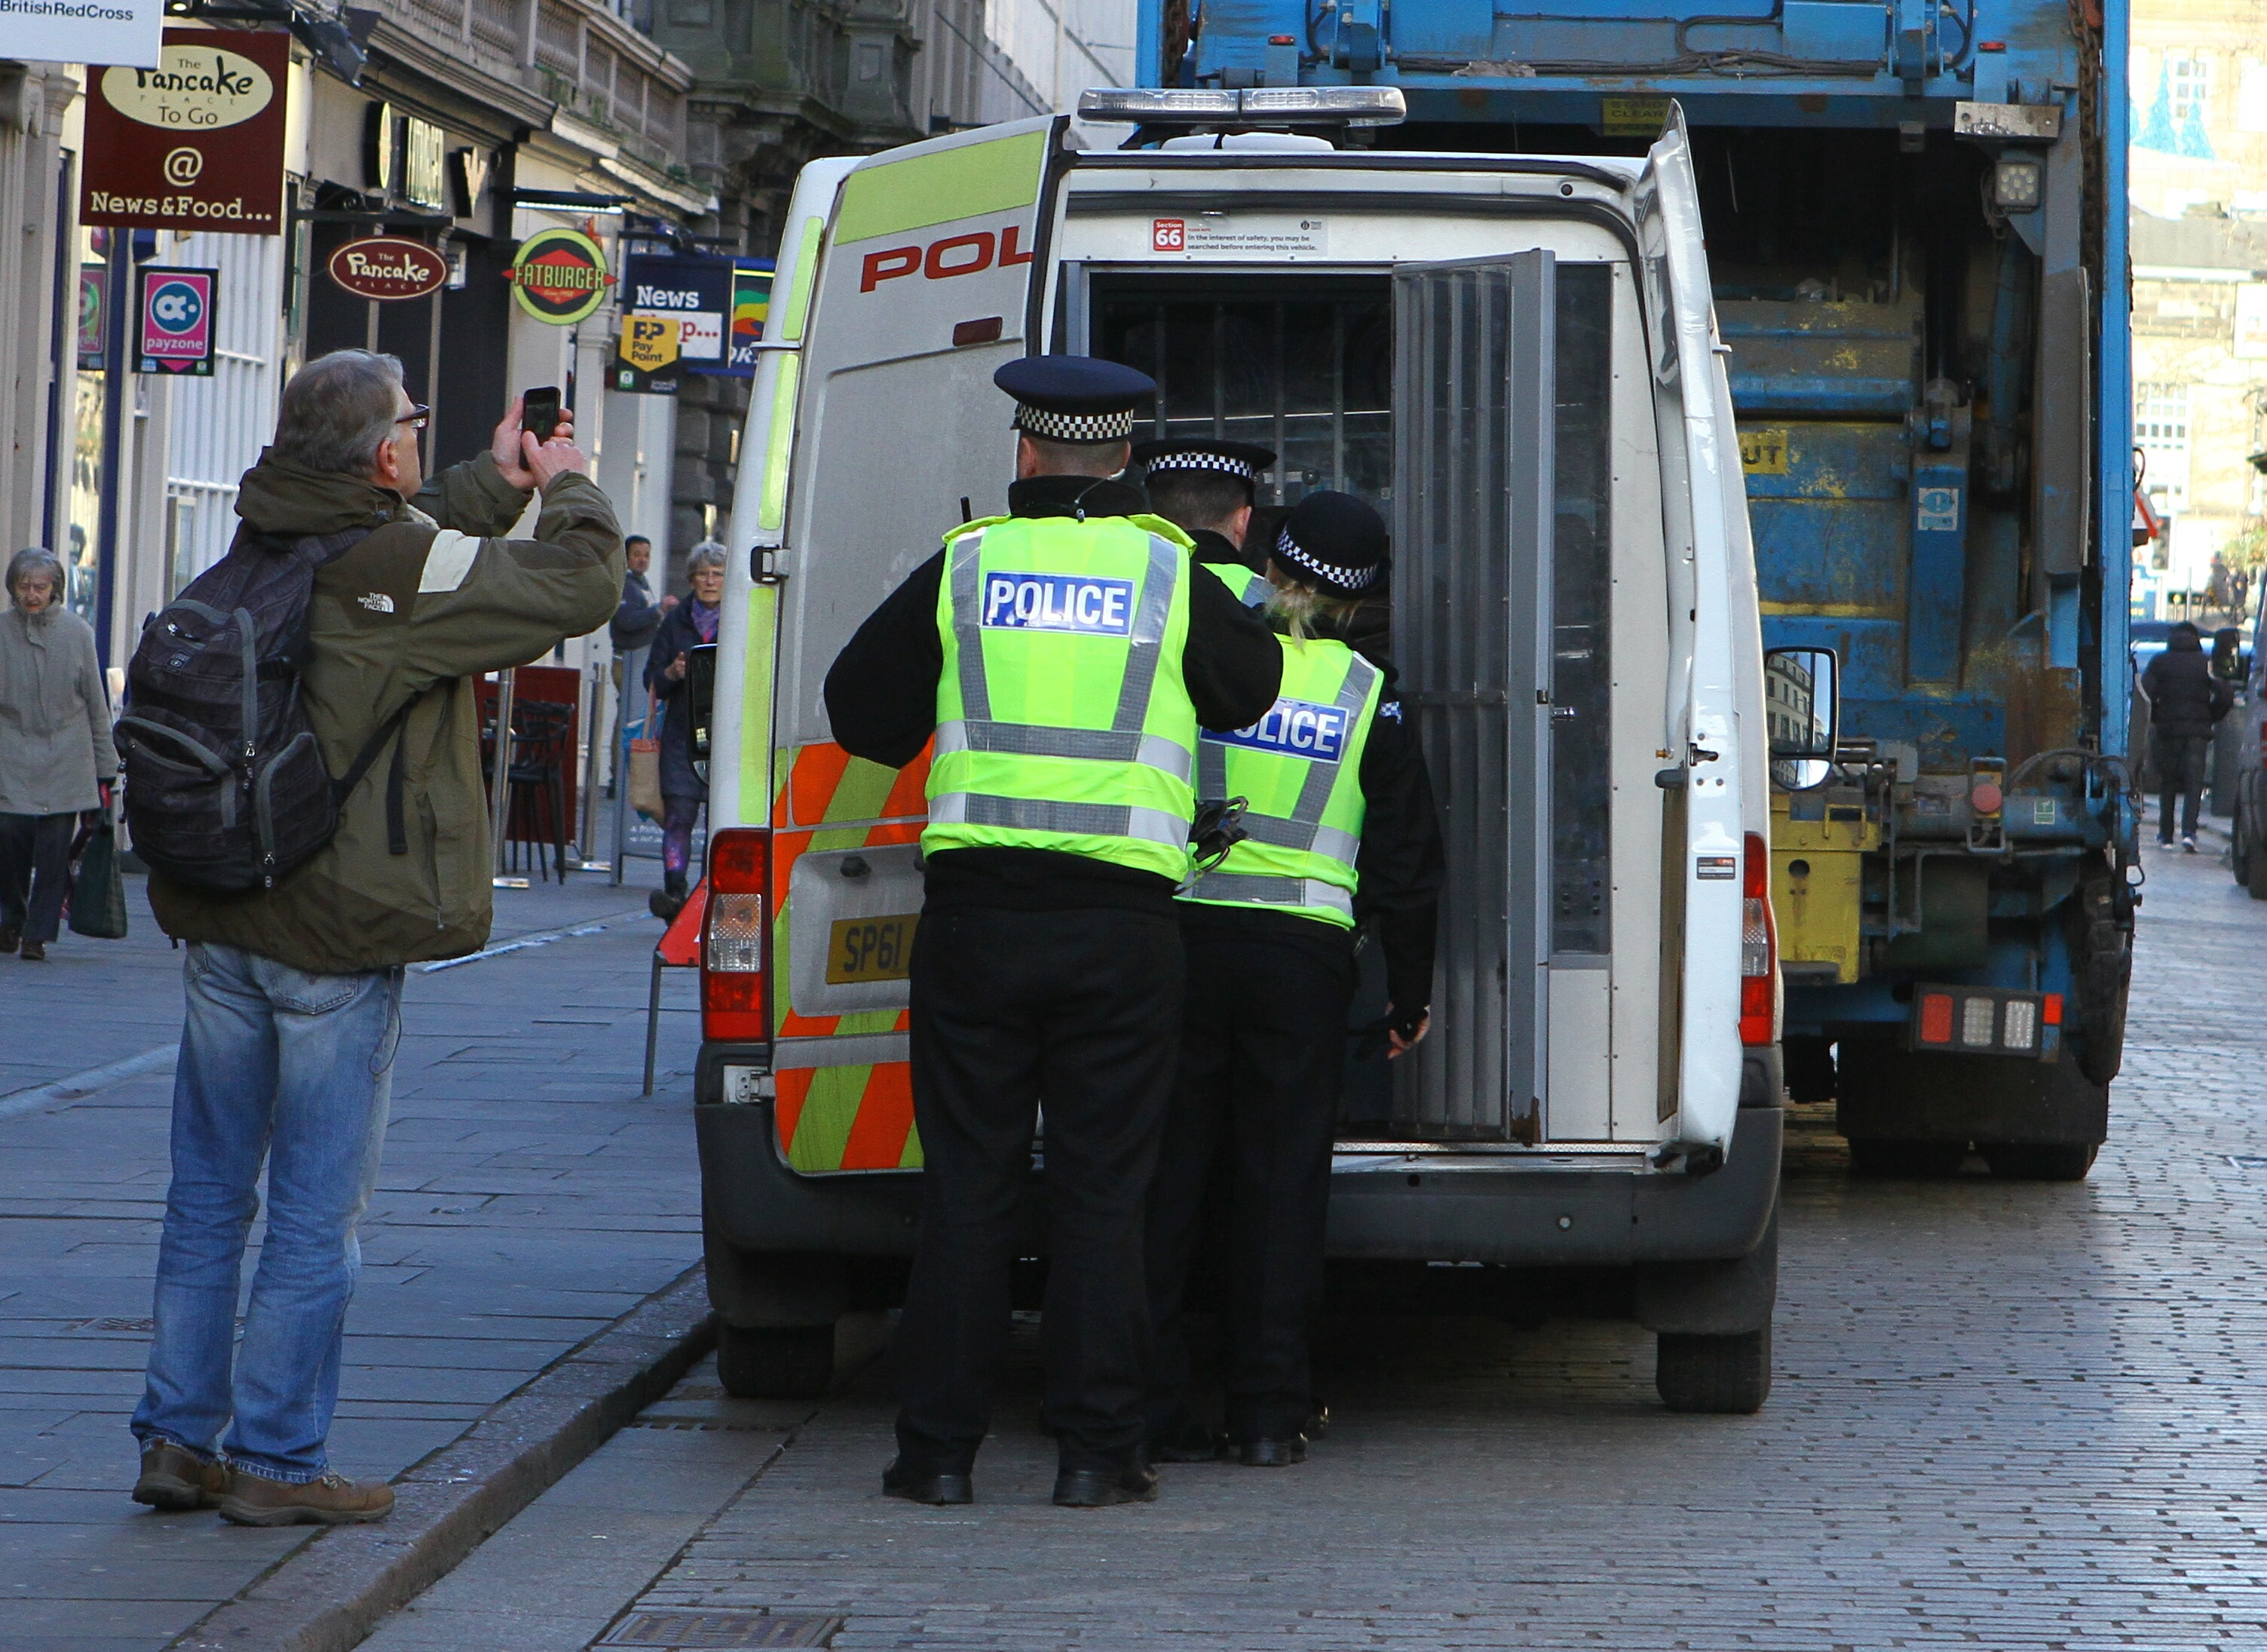 A man was arrested during a protest in City Square, Dundee today